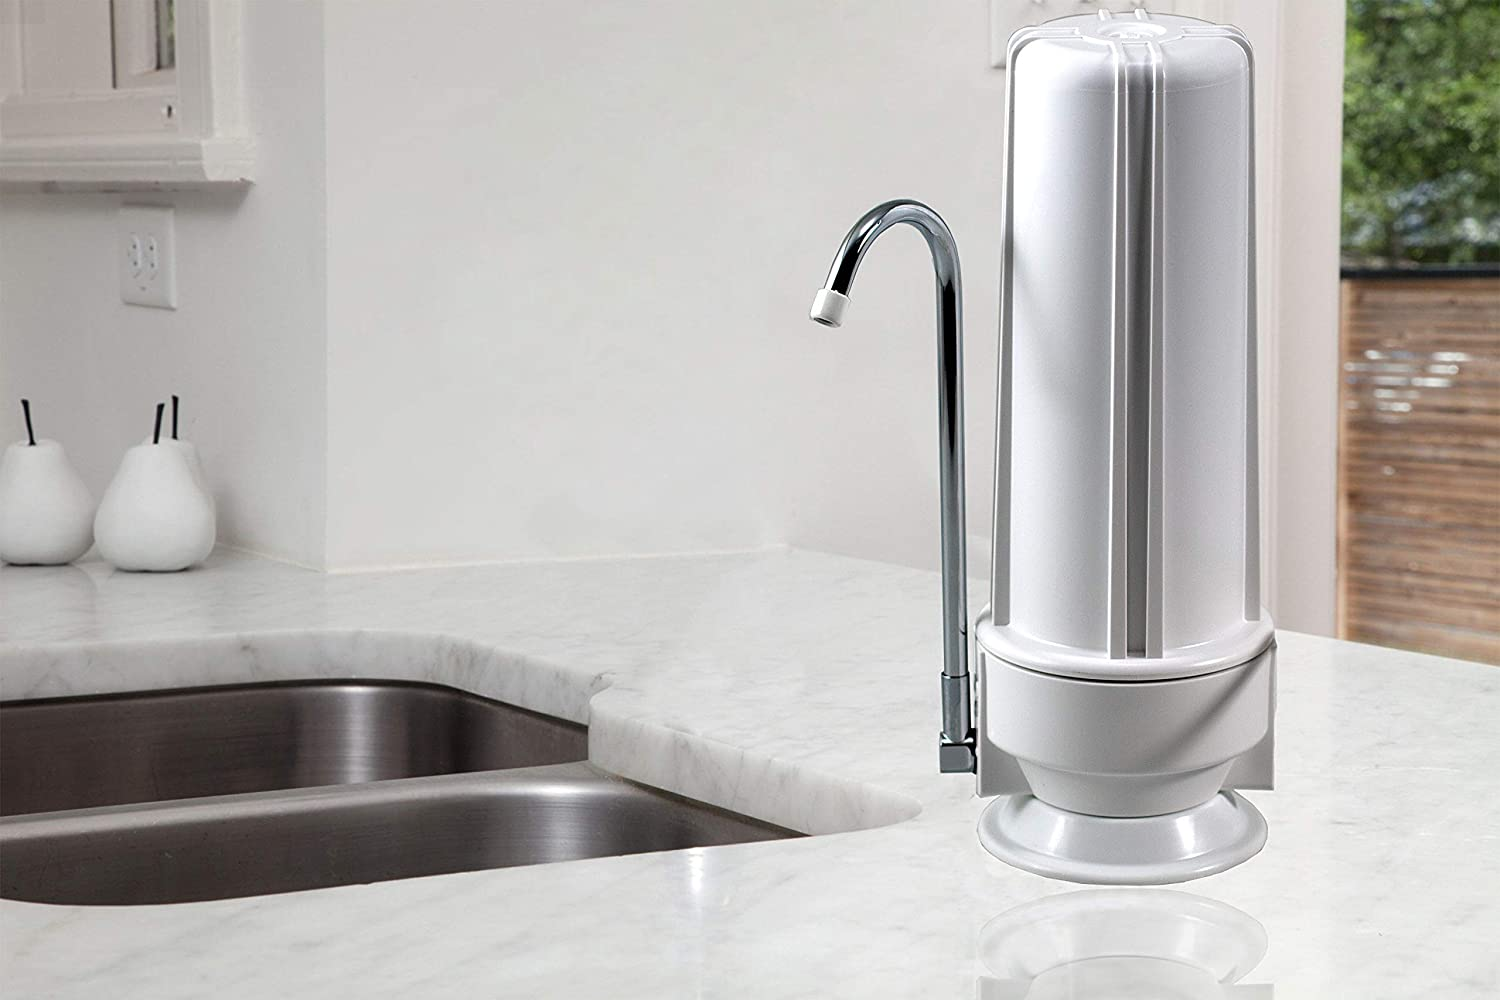 Premium Countertop Water Filter on the counter